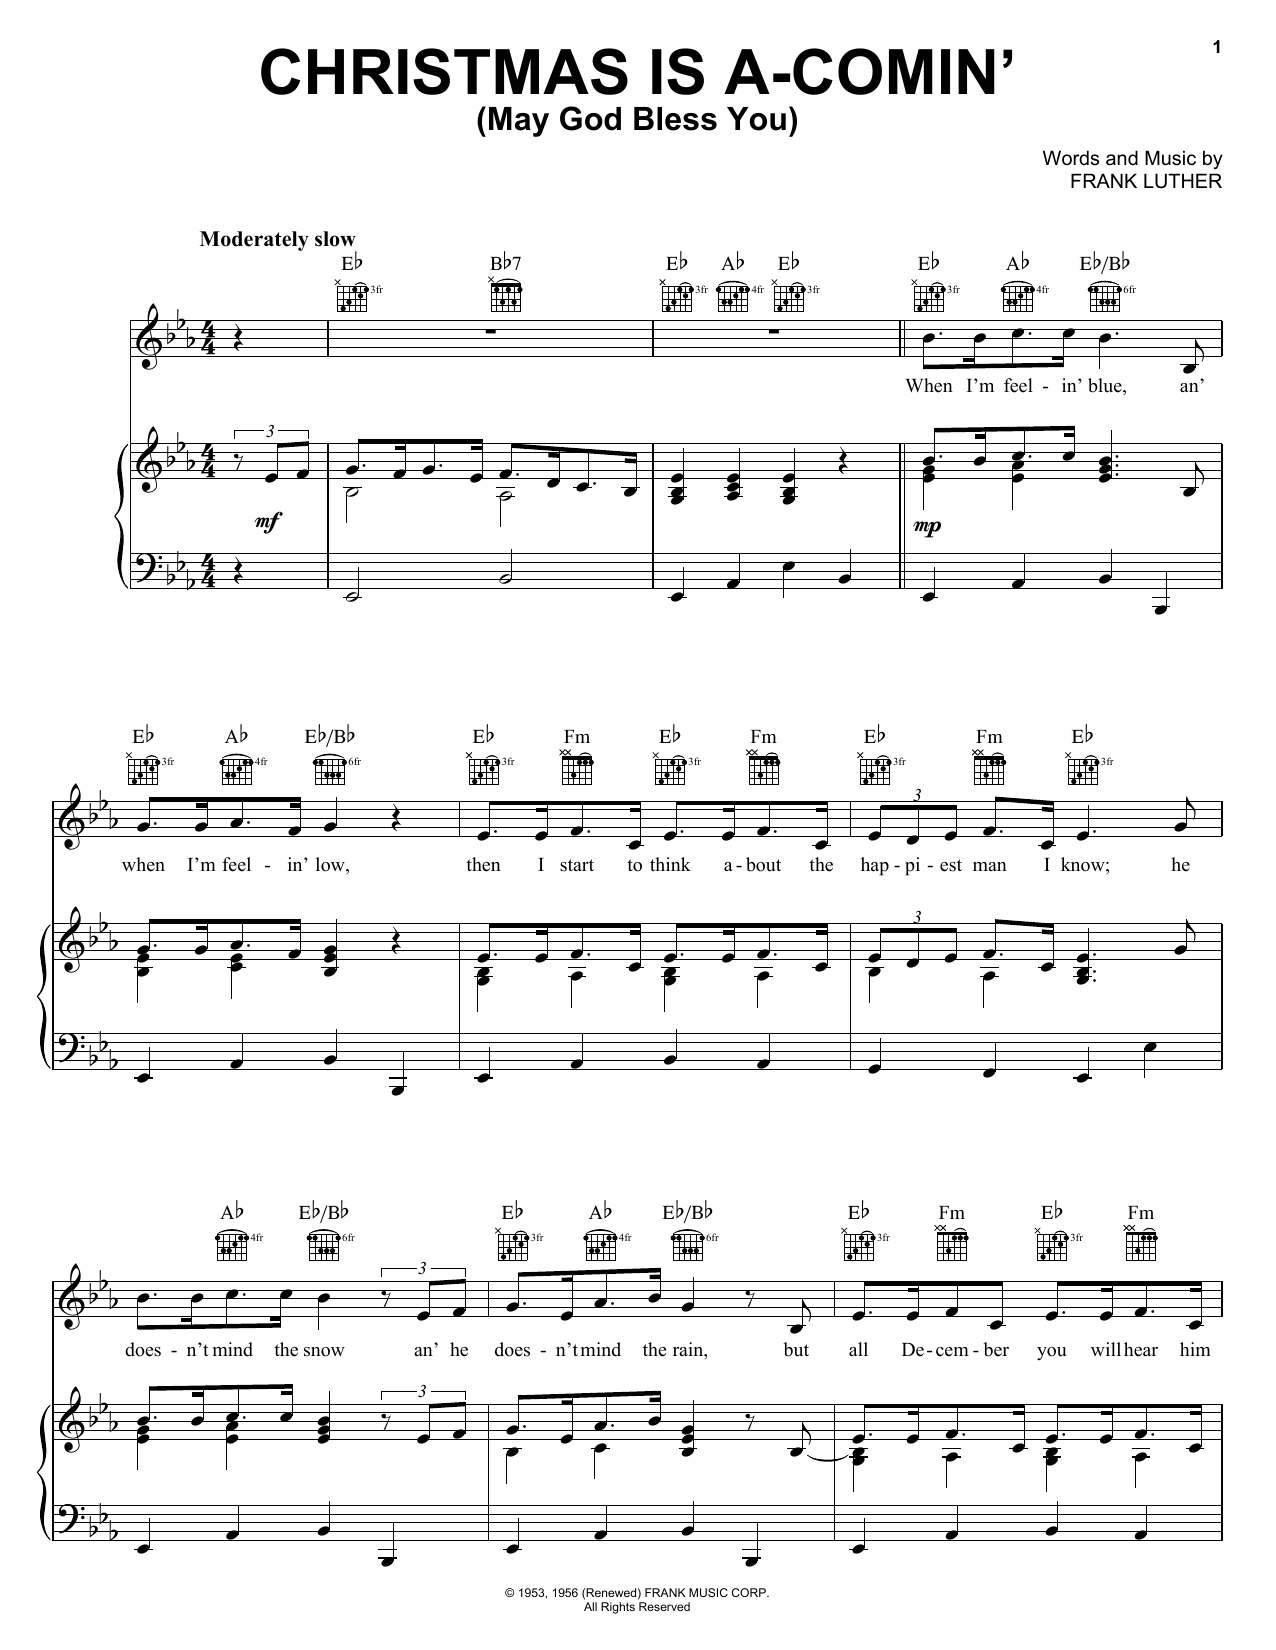 Frank Luther Christmas Is A-Comin' (May God Bless You) sheet music notes and chords. Download Printable PDF.